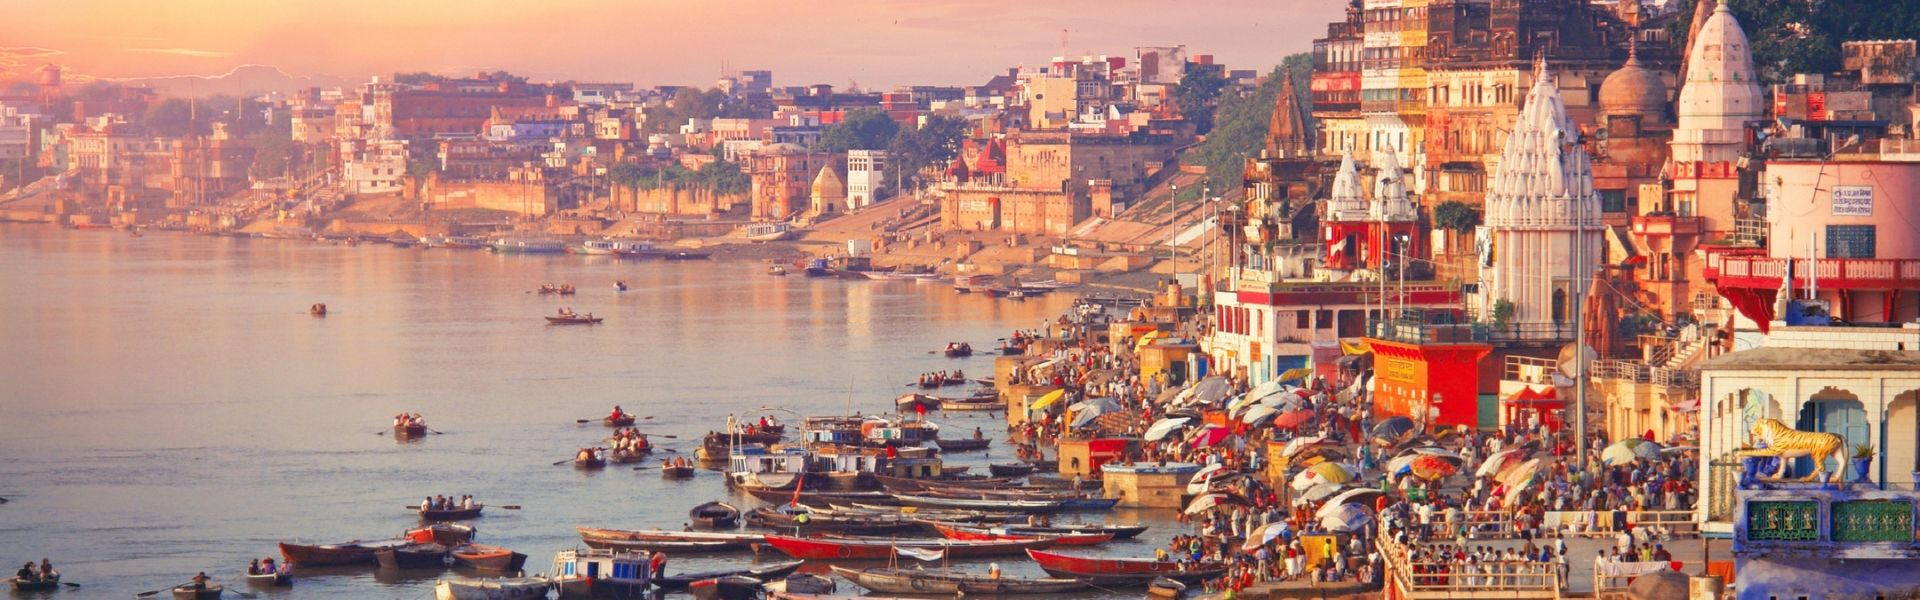 varanasi,india tour,banaras,incredible india,tailor made holidays,unique holidays